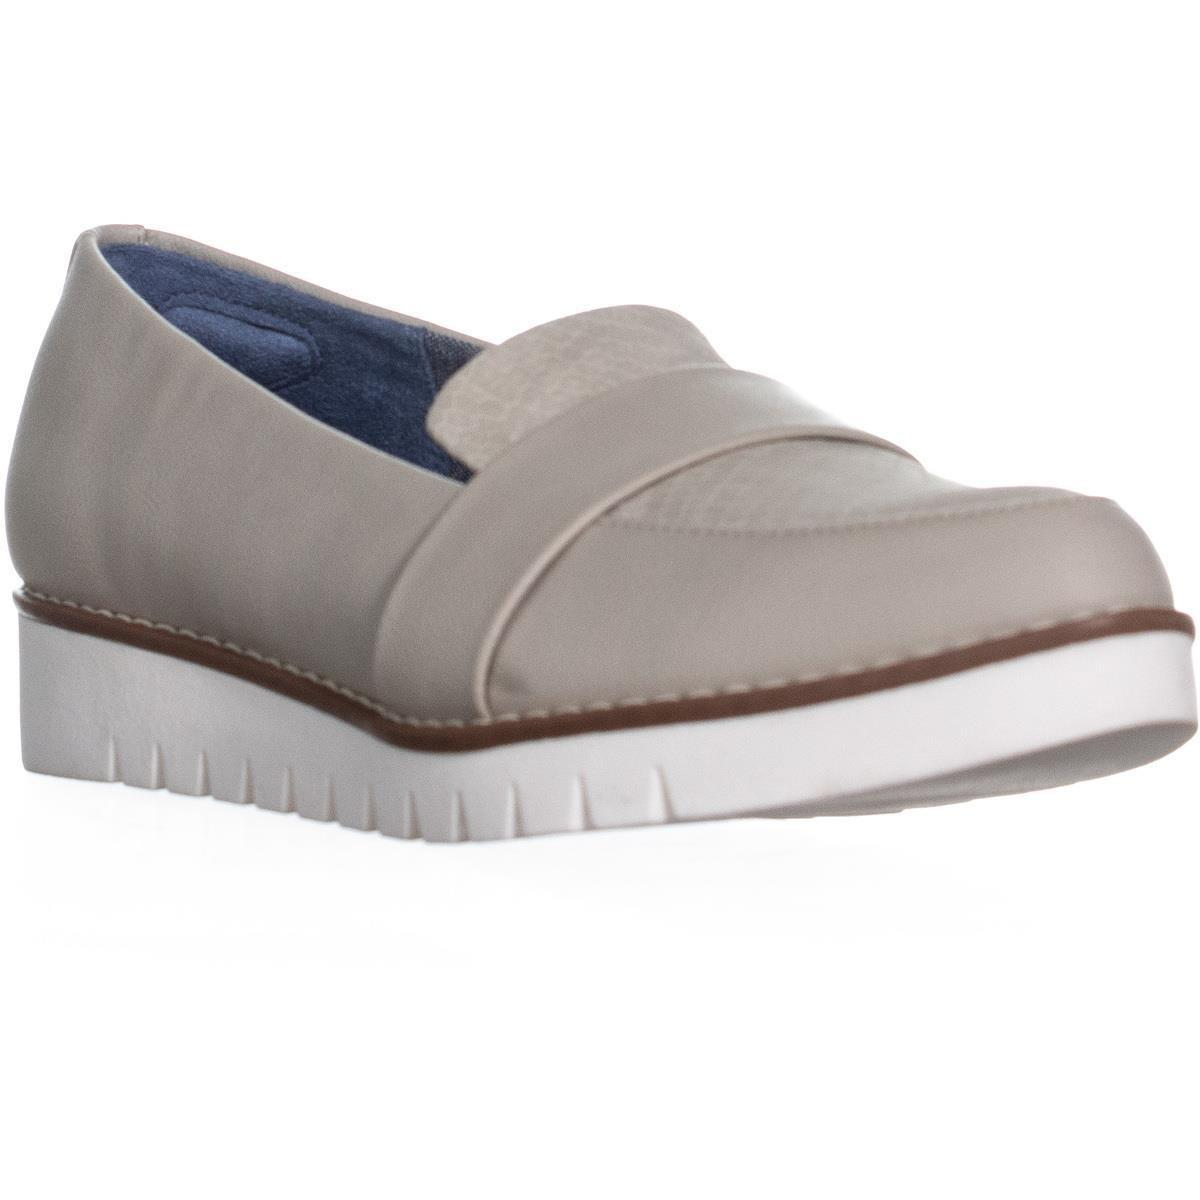 a8d6458a2a5 Dr. Scholls Imagine Pointed Toe Loafers in Gray - Lyst